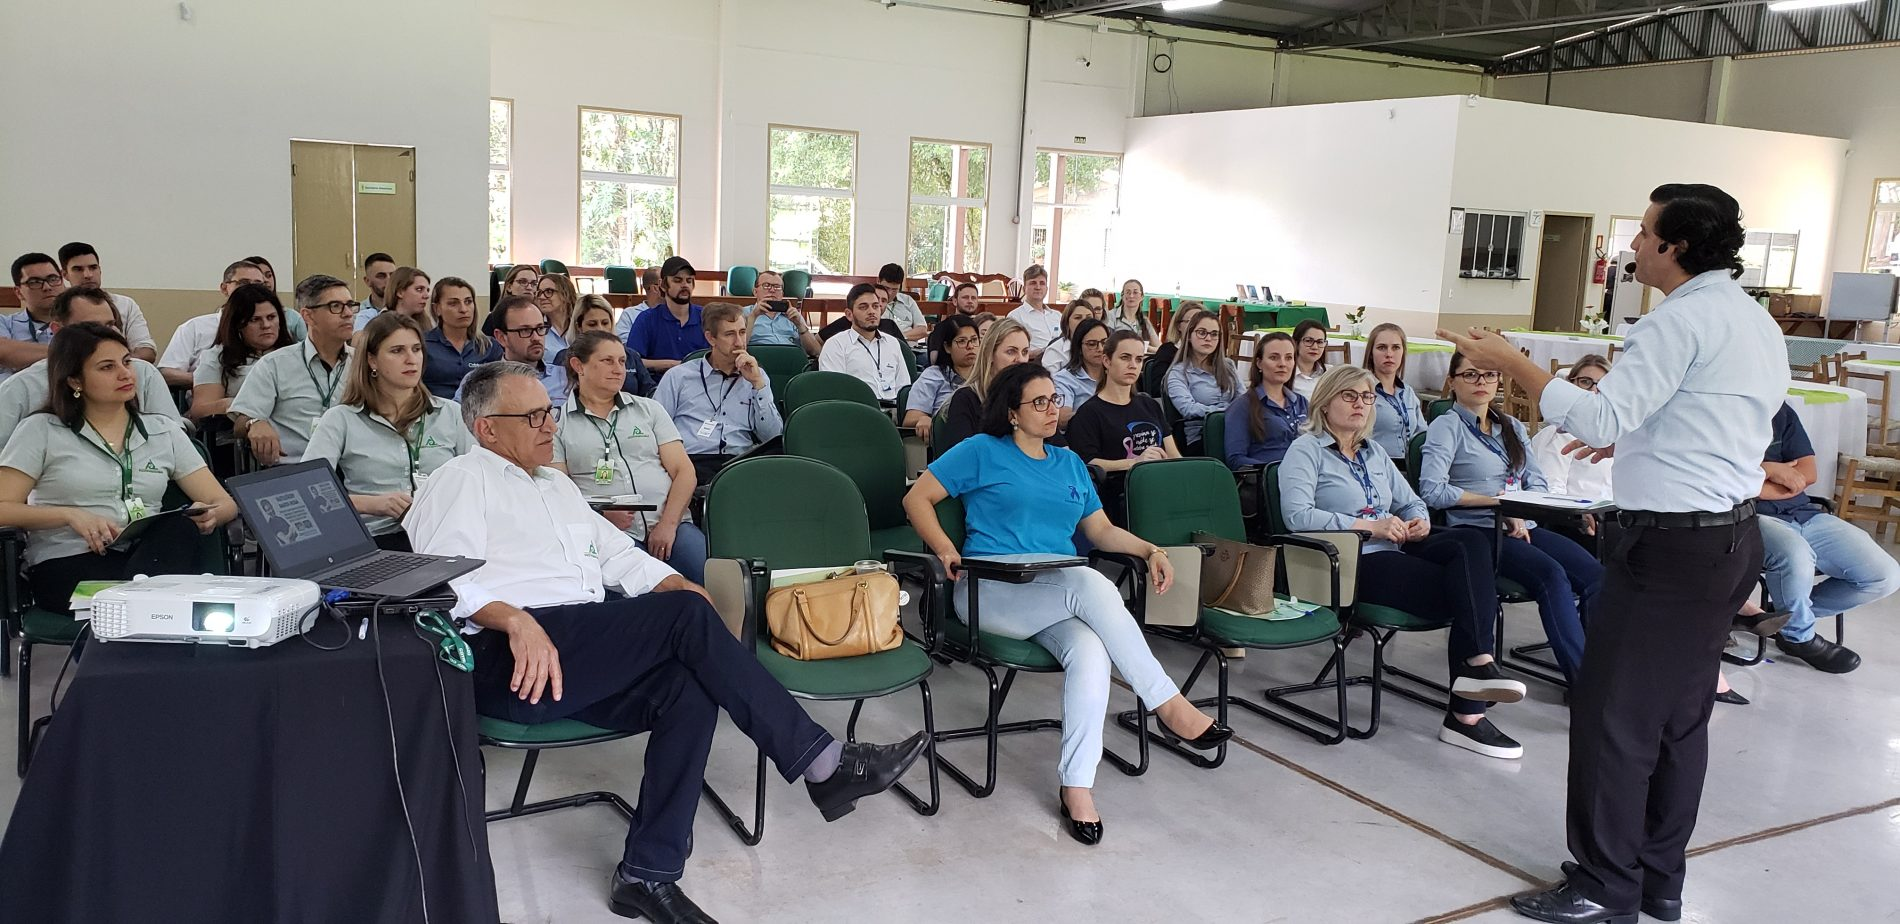 Encontro Das Areas De RH E Seguranca Do RS Cotrirosa 14.11.2019 (1)